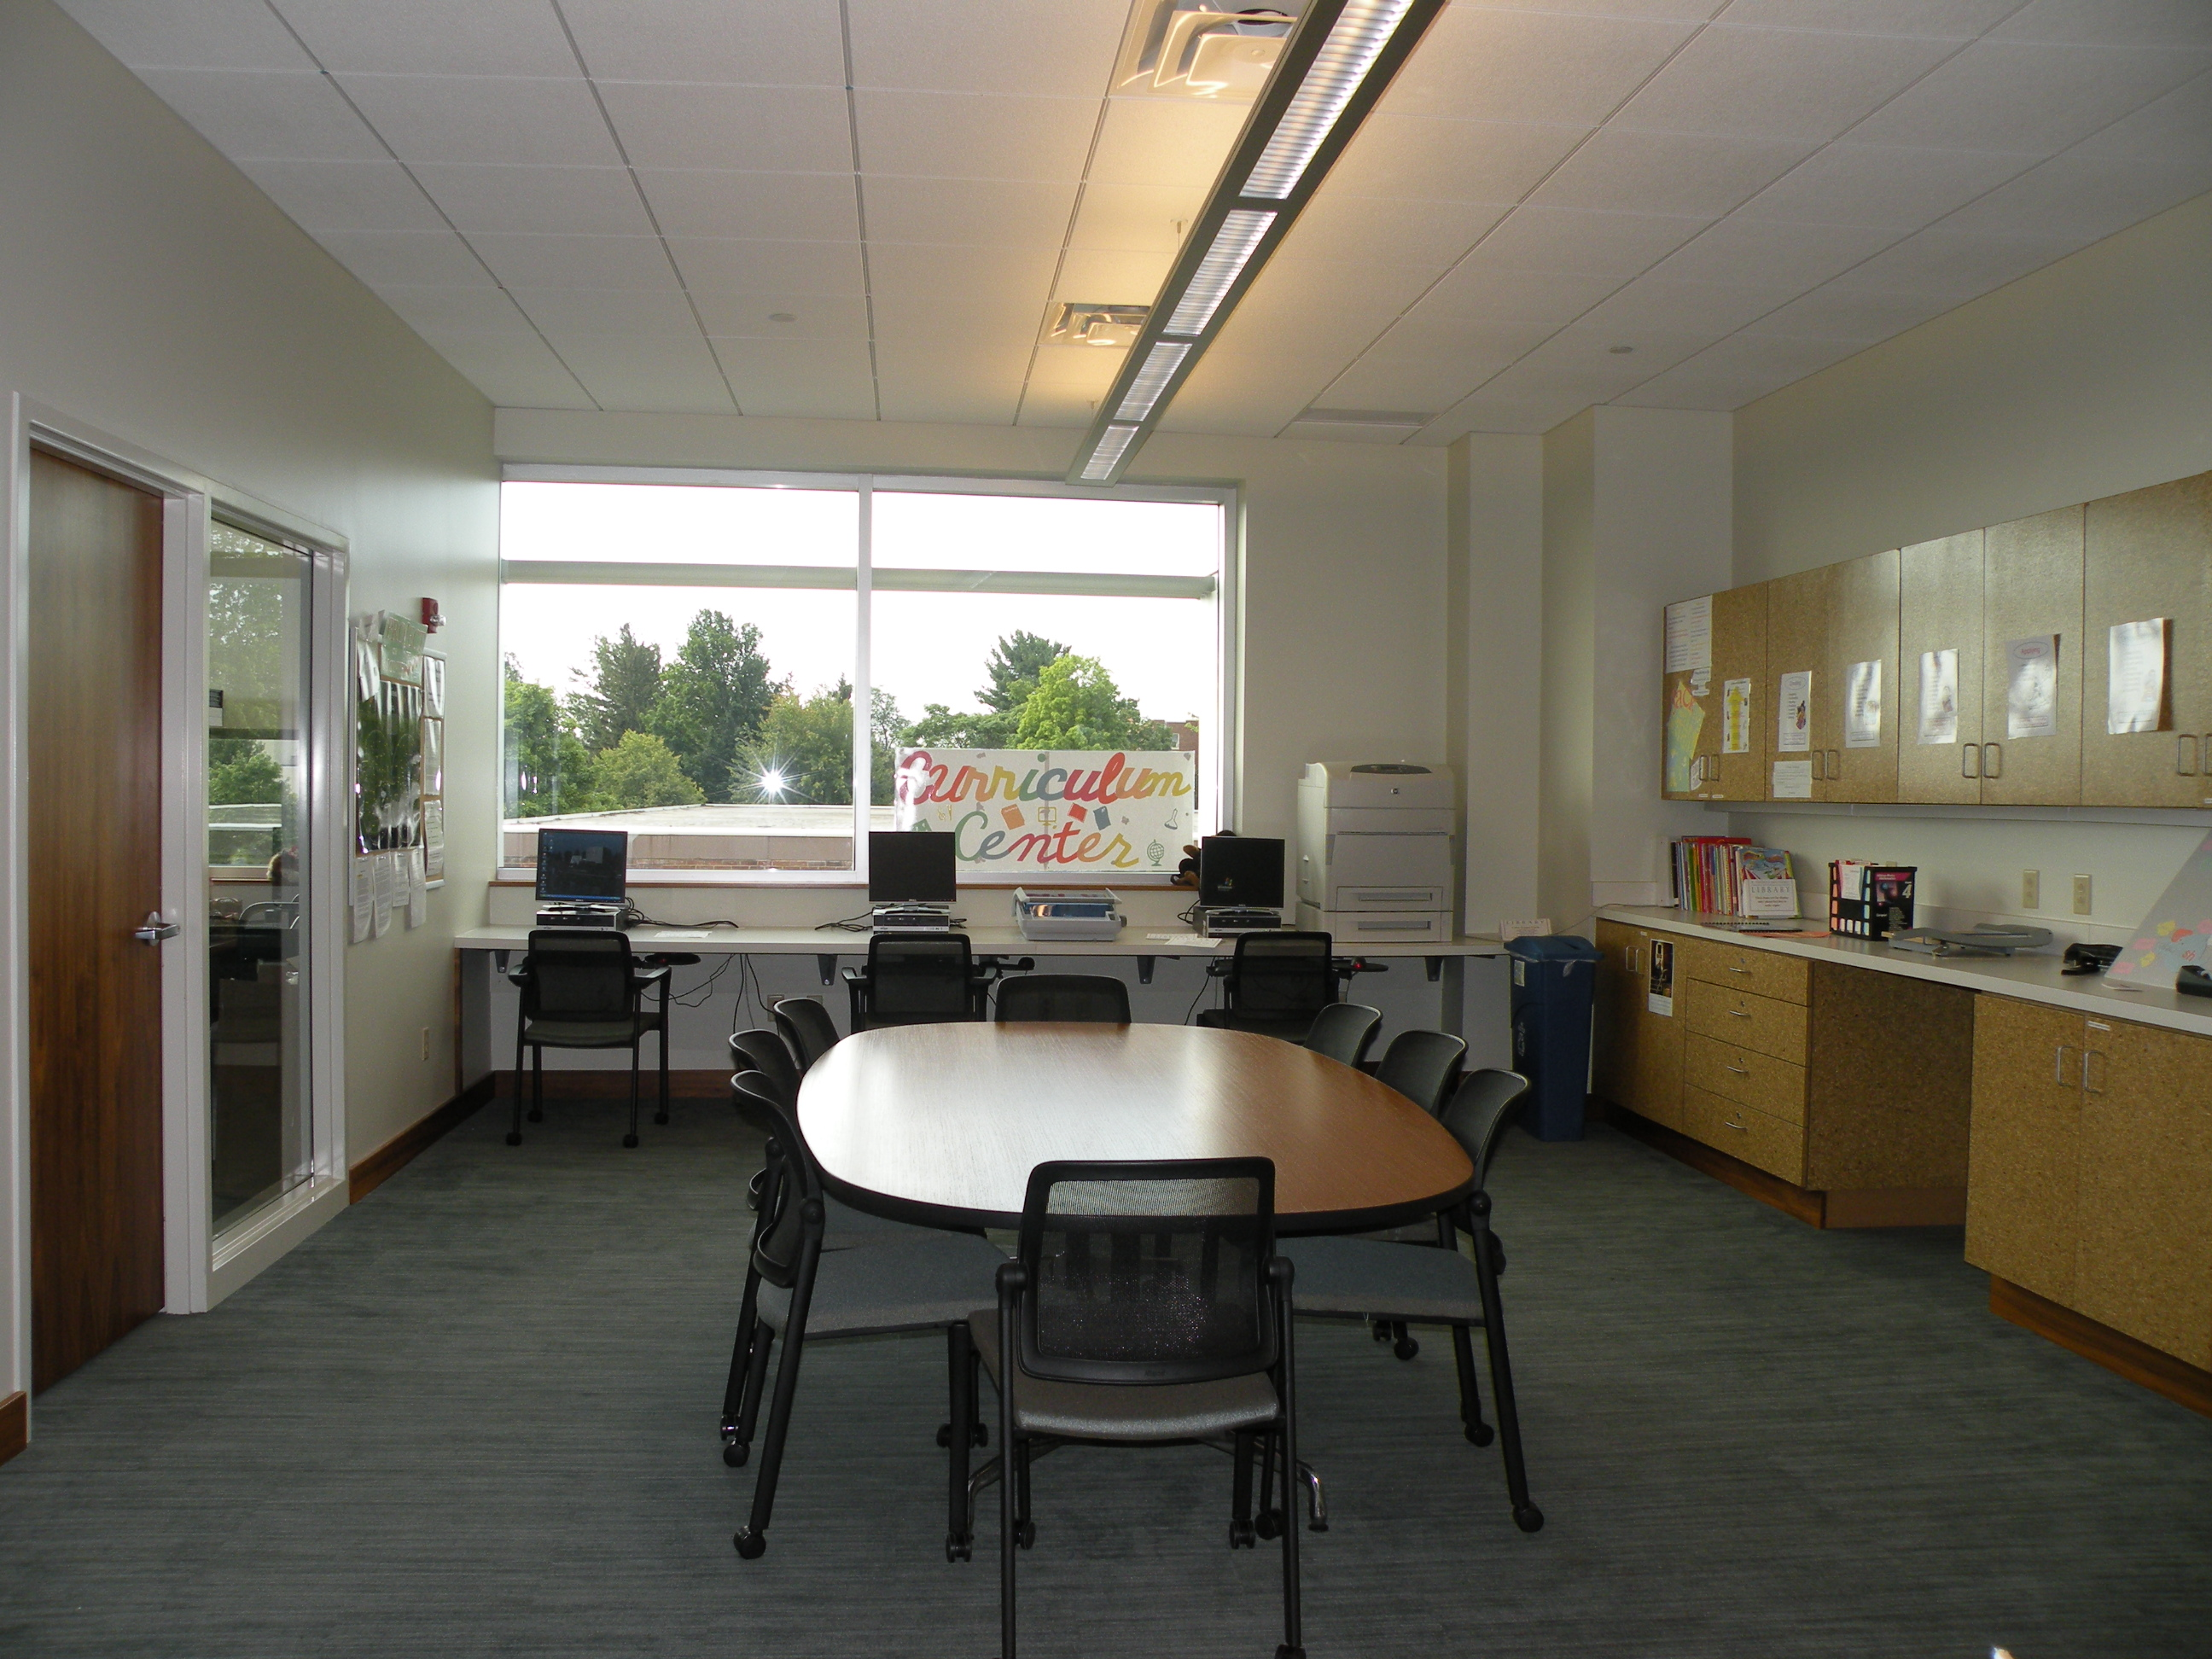 Curriculum_Center_20090819.JPG